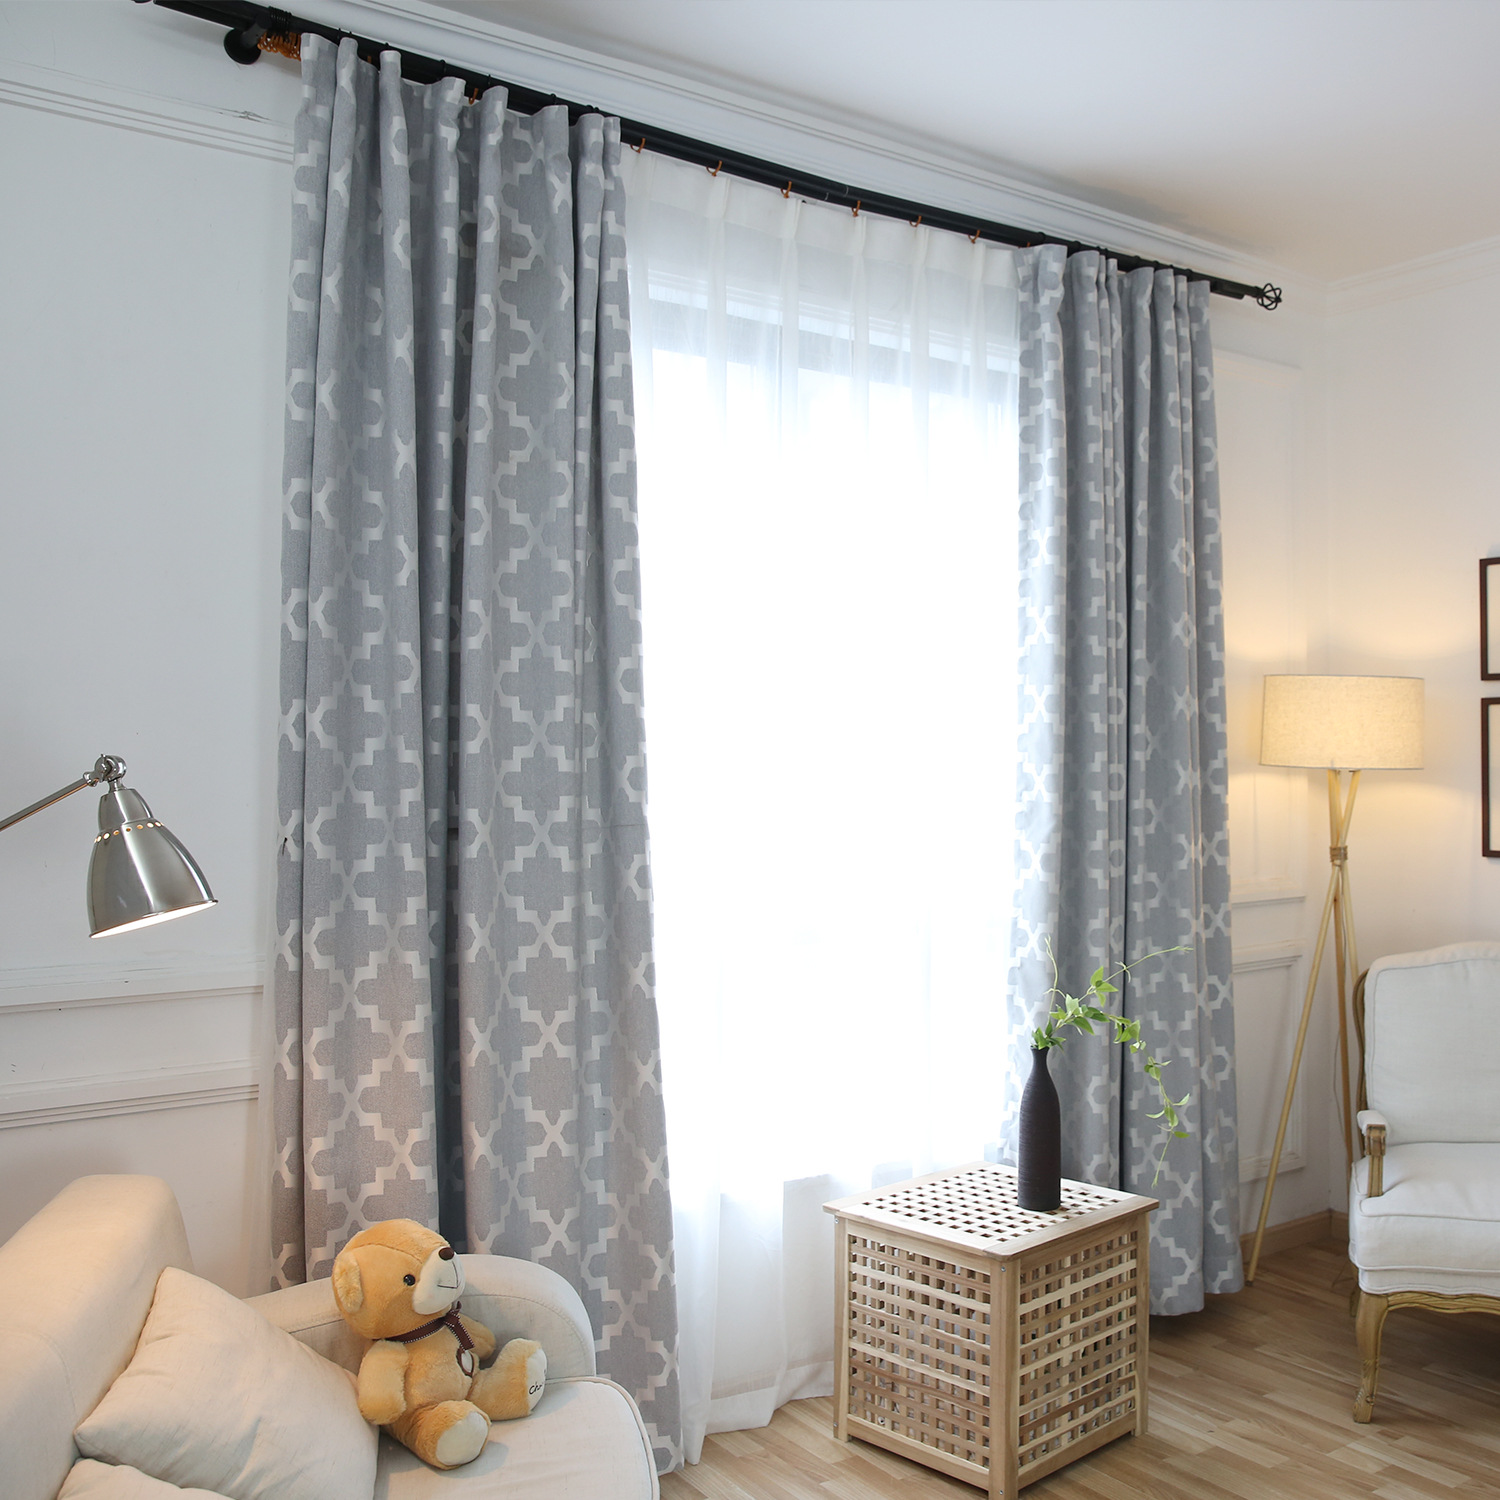 ihlow cotton jacquard curtain fabric with high weight and high shading curtains for living dining room bedroom blinds